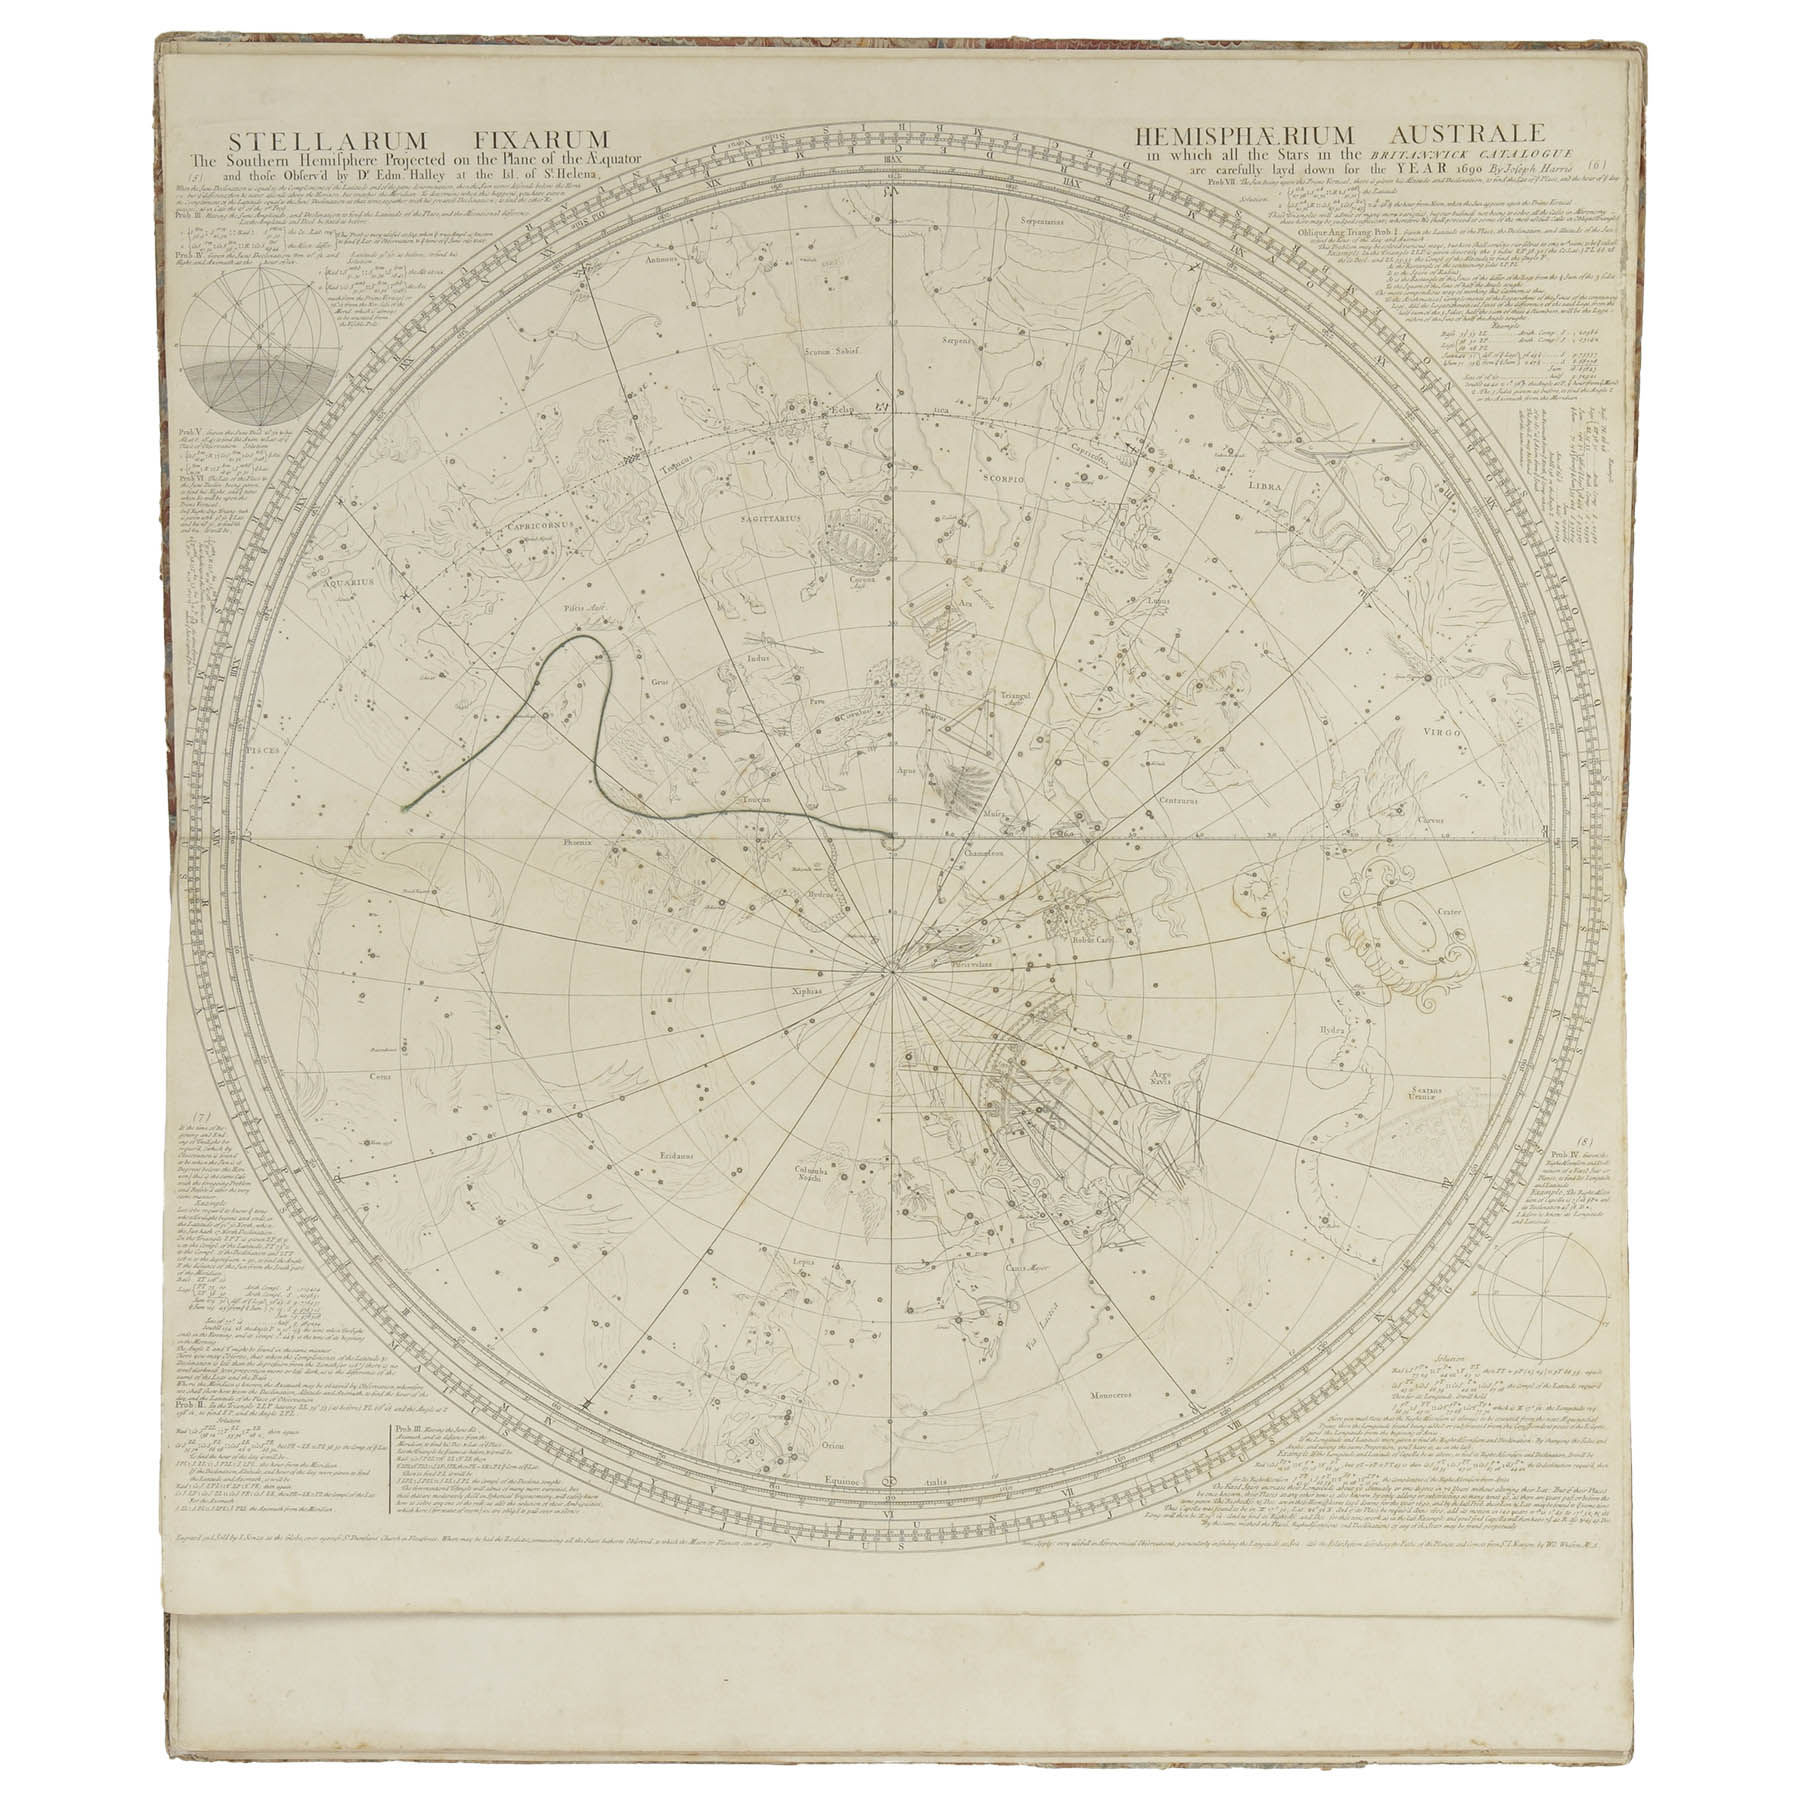 The English Pilot for the Southern Navigation: Describing the Sea-Coasts, Capes, Headlands, Bays, Roads, Harbours, Rivers and Ports: together with the Soundings, Sands, Rocks and Dangers on the Coast of England, Scotland, Ireland, Holland, Flanders, Spain, Portugal, to the Streight's- Mouth; with the Coasts of Barbary, and off to the Canary, Madeira, Cape de Verde and Western Islands Shewing the Courses and Distances from one place to another; The Setting of the Tides and Currents; the Ebbing and Flowing of the Sea, &c. (photo 2)